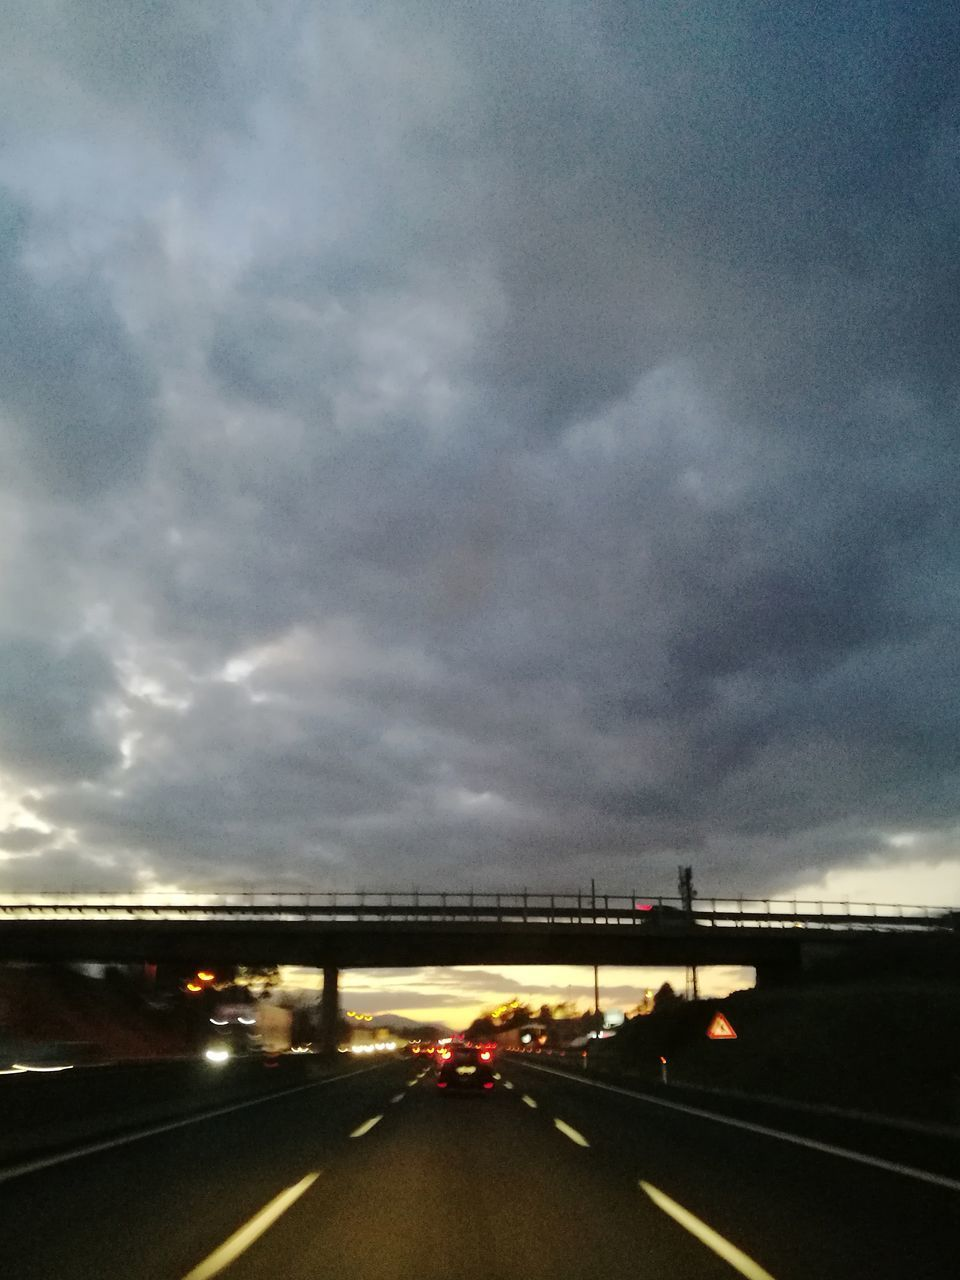 cloud - sky, transportation, sky, road, motor vehicle, mode of transportation, car, sign, no people, land vehicle, the way forward, highway, nature, street, direction, dusk, illuminated, symbol, traffic, bridge - man made structure, outdoors, multiple lane highway, dividing line